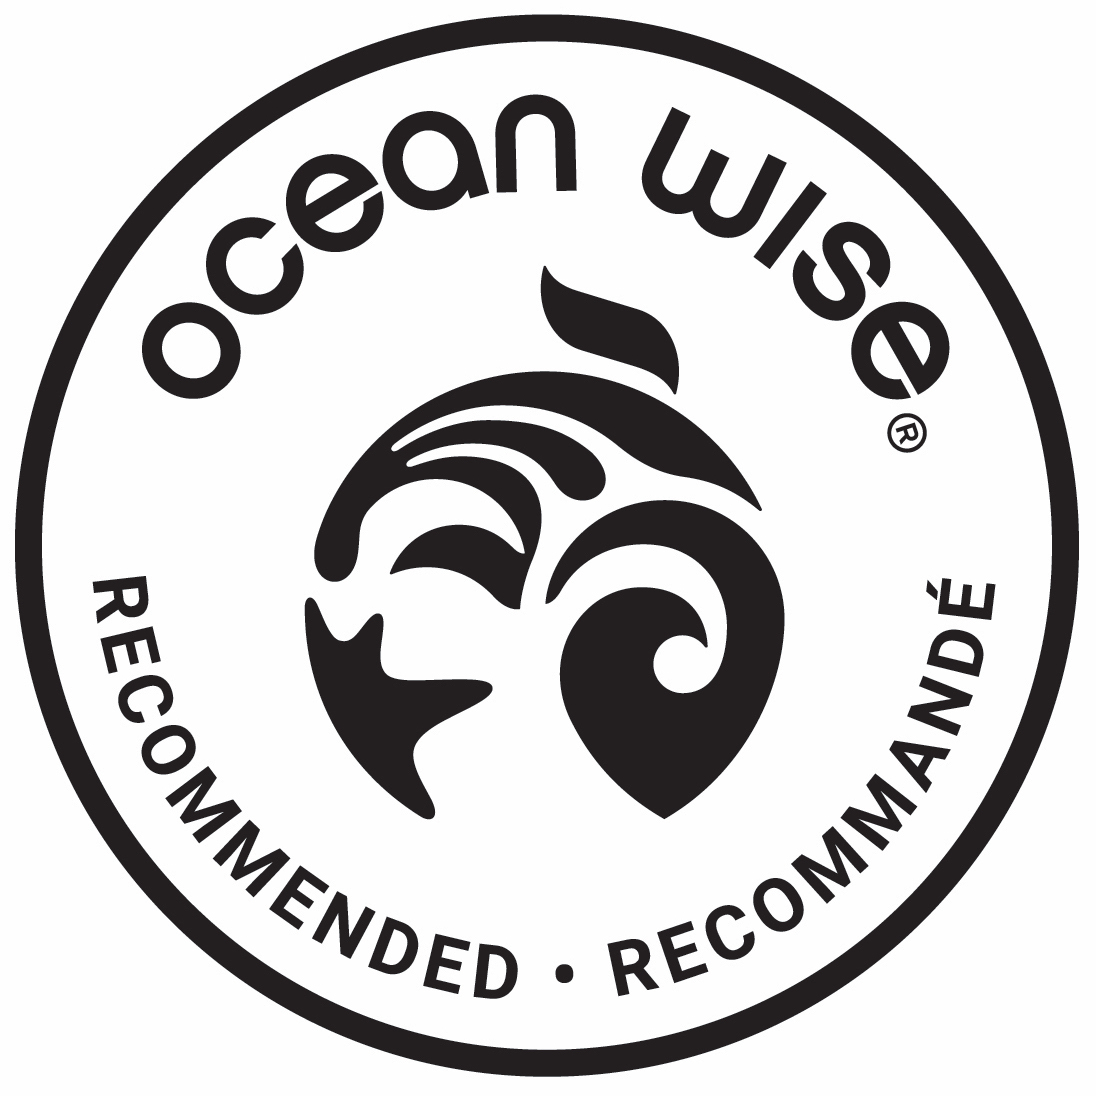 We are 99%  Ocean Wise . Only one item is not on the list, but it is Marine Stewardship Council certified. We are passionately committed to sustainability!